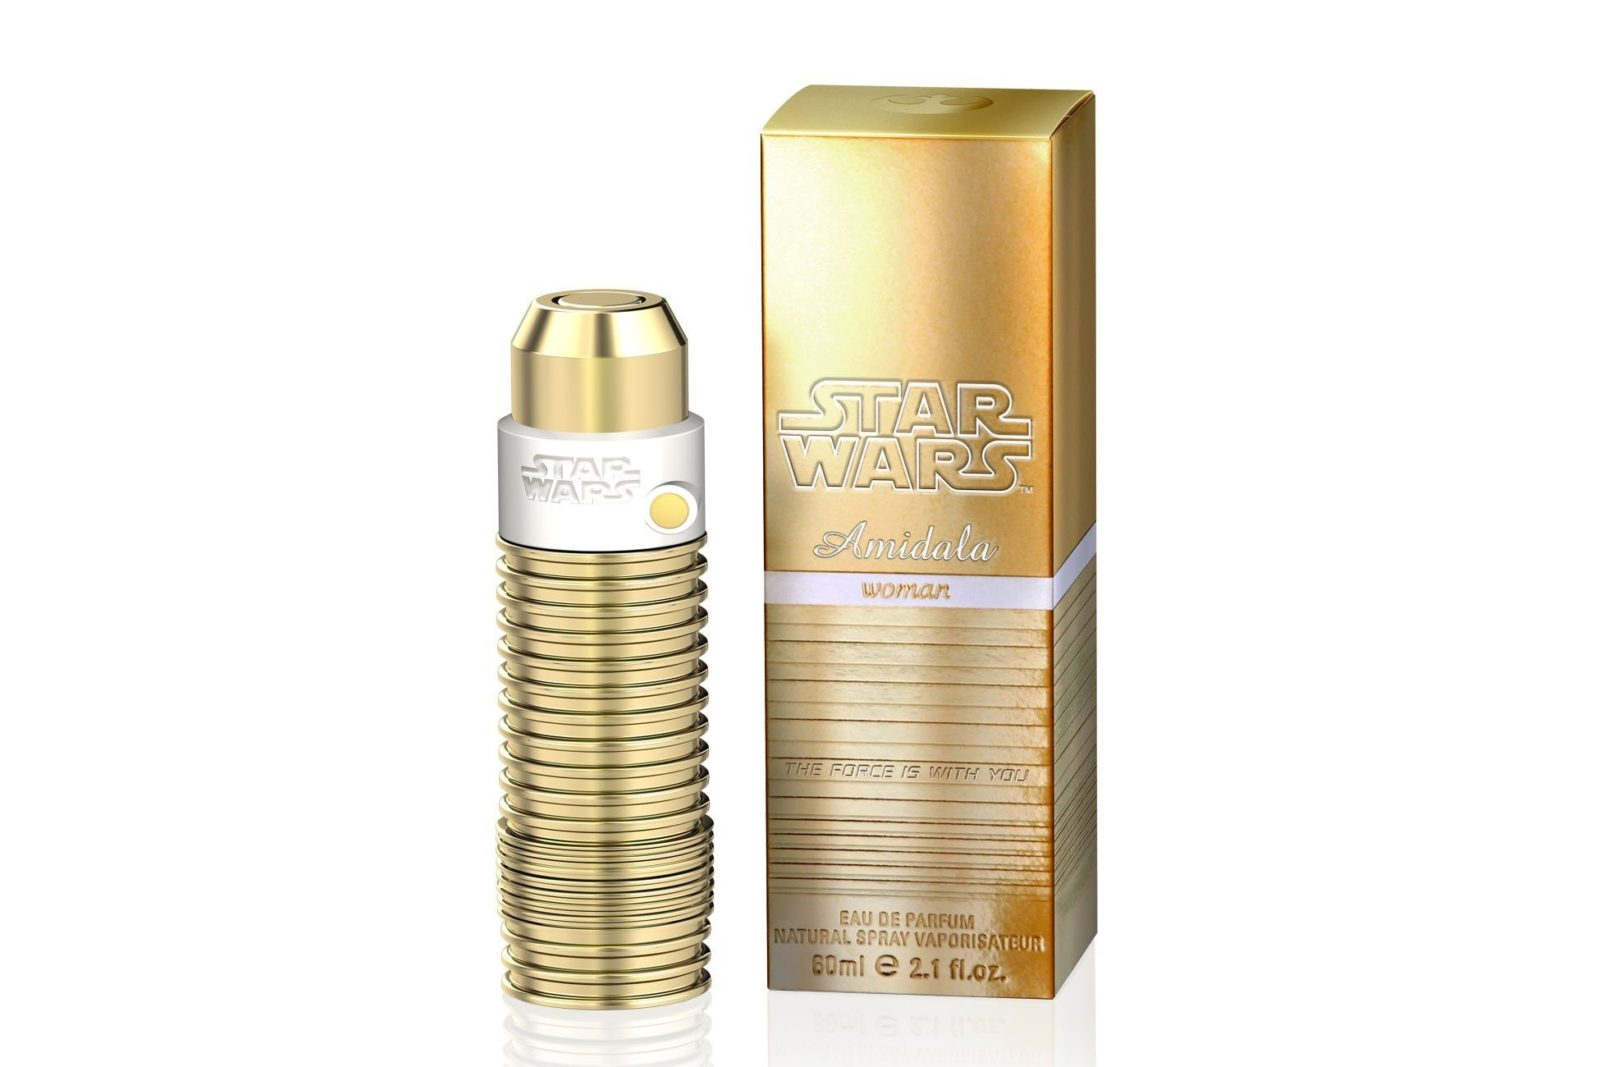 Star Wars Lifestyle Perfumes Available in US